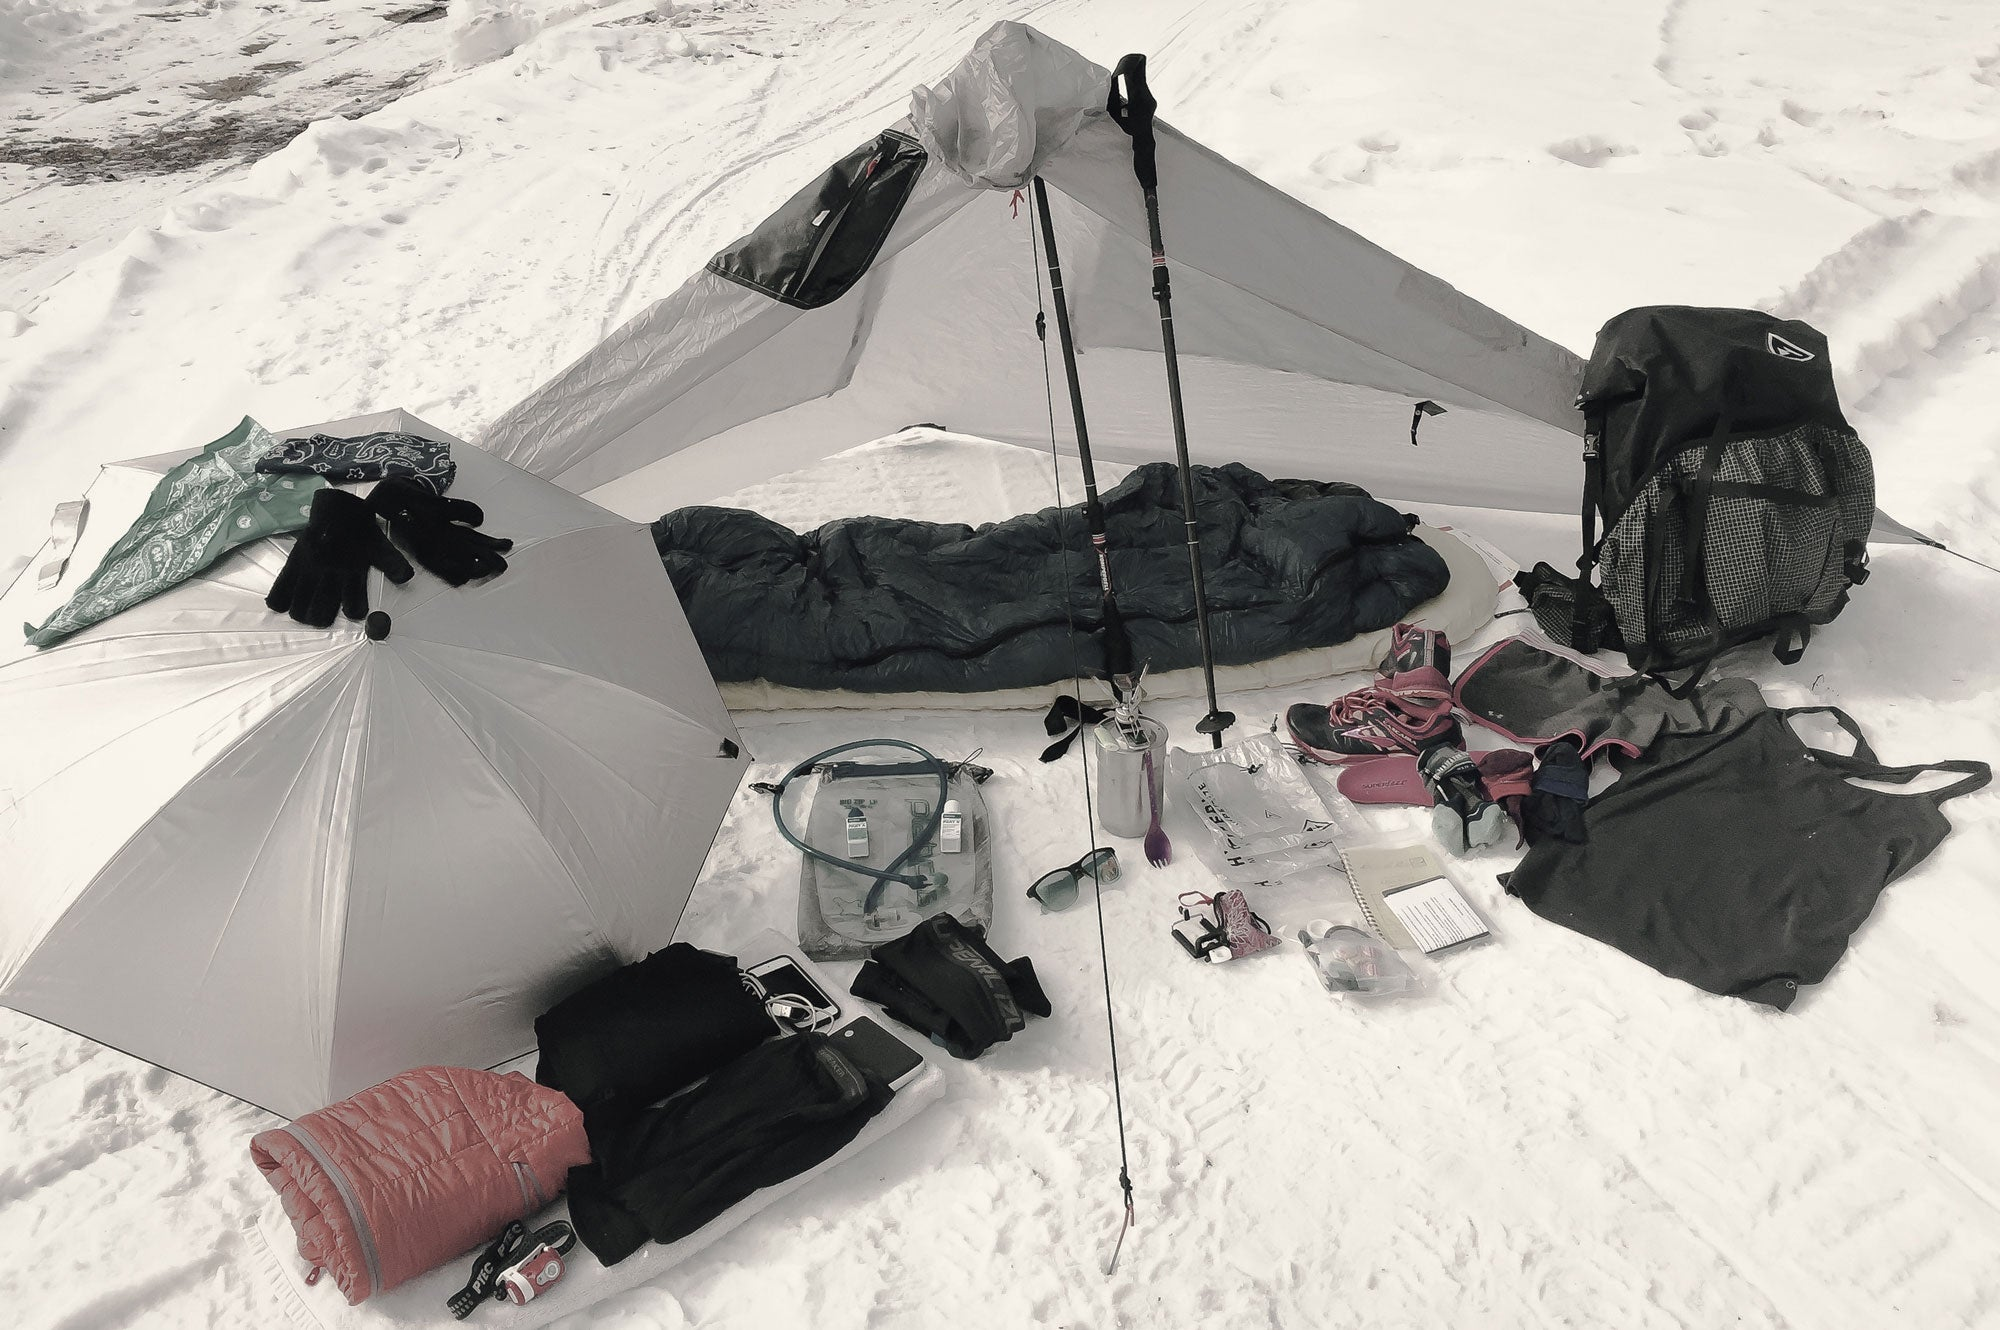 Robin Standish's ultralight PCT gear list.